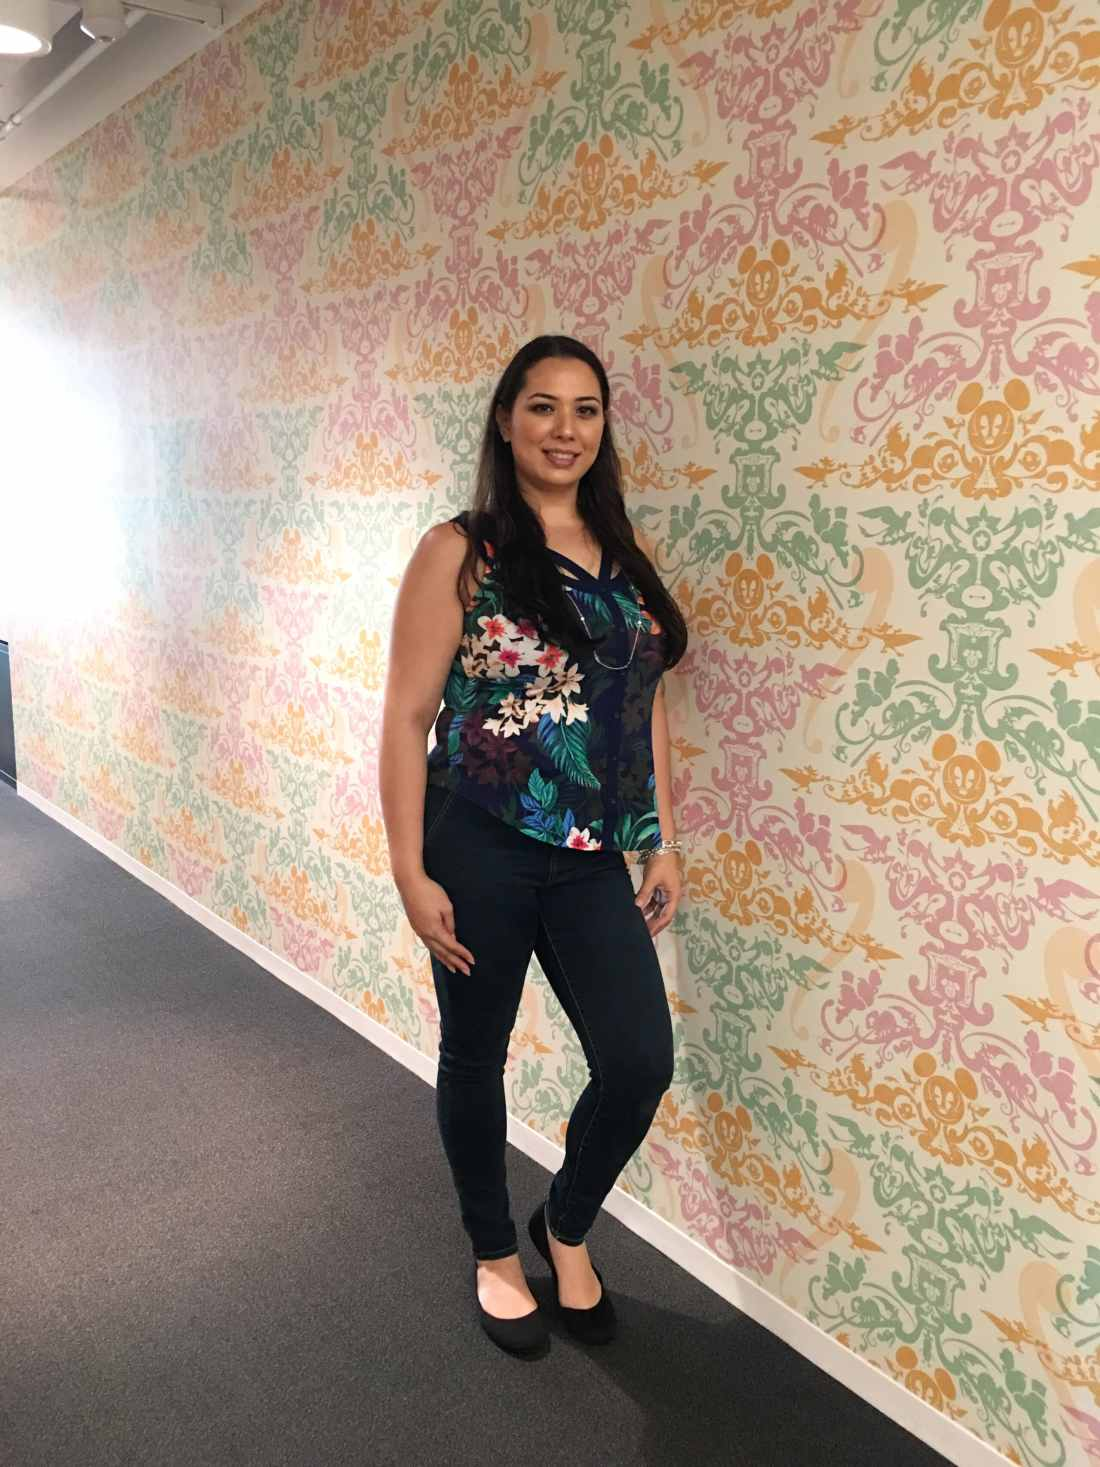 Jessica Simms Jays Sweet N Sour Life at Disney Channel animation Building posing with Disney Wall Art.